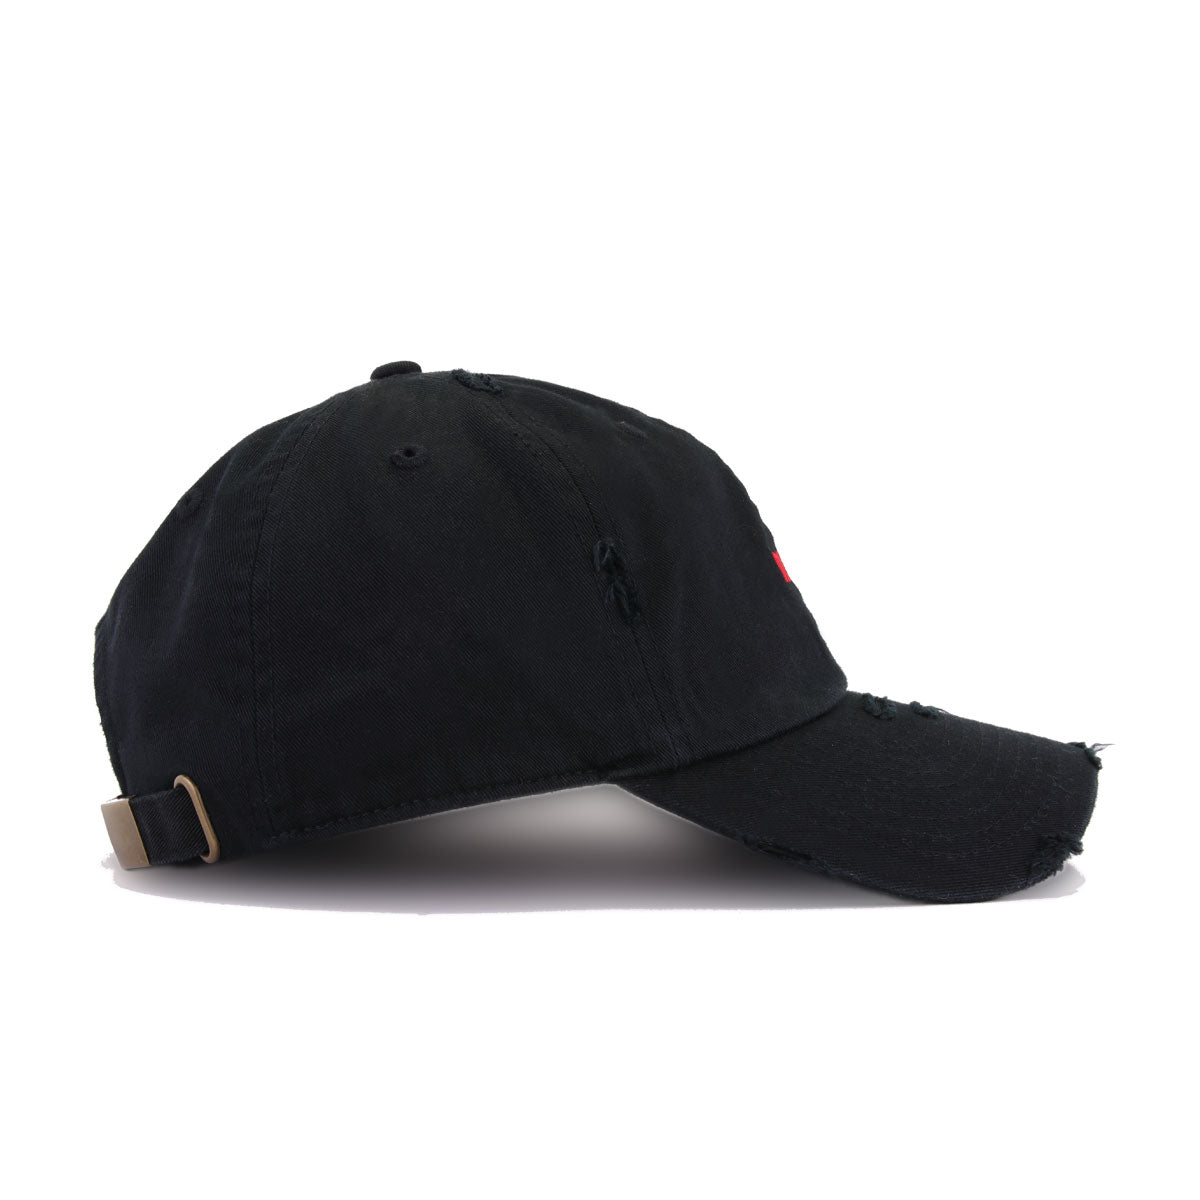 Distressed NASA Worm Black KBEthos Vintage Dad Hat